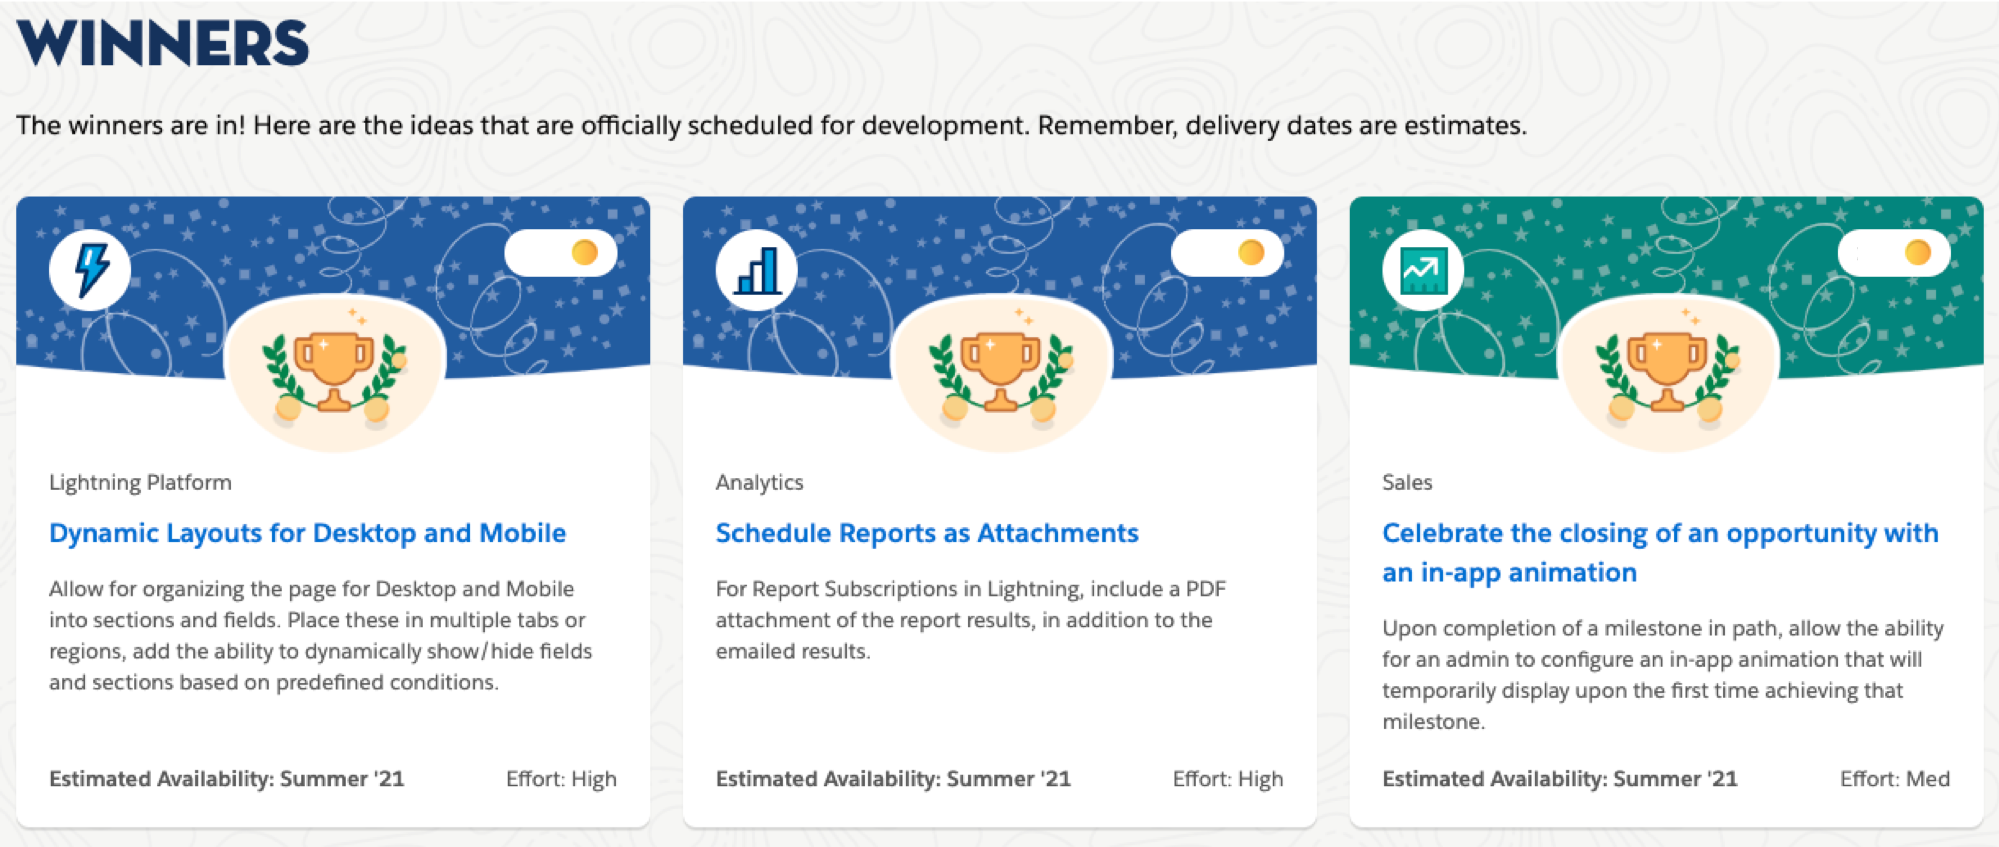 The Winners section of the IdeaExchange Prioritization page shows information cards for the winning ideas from the latest prioritization cycle